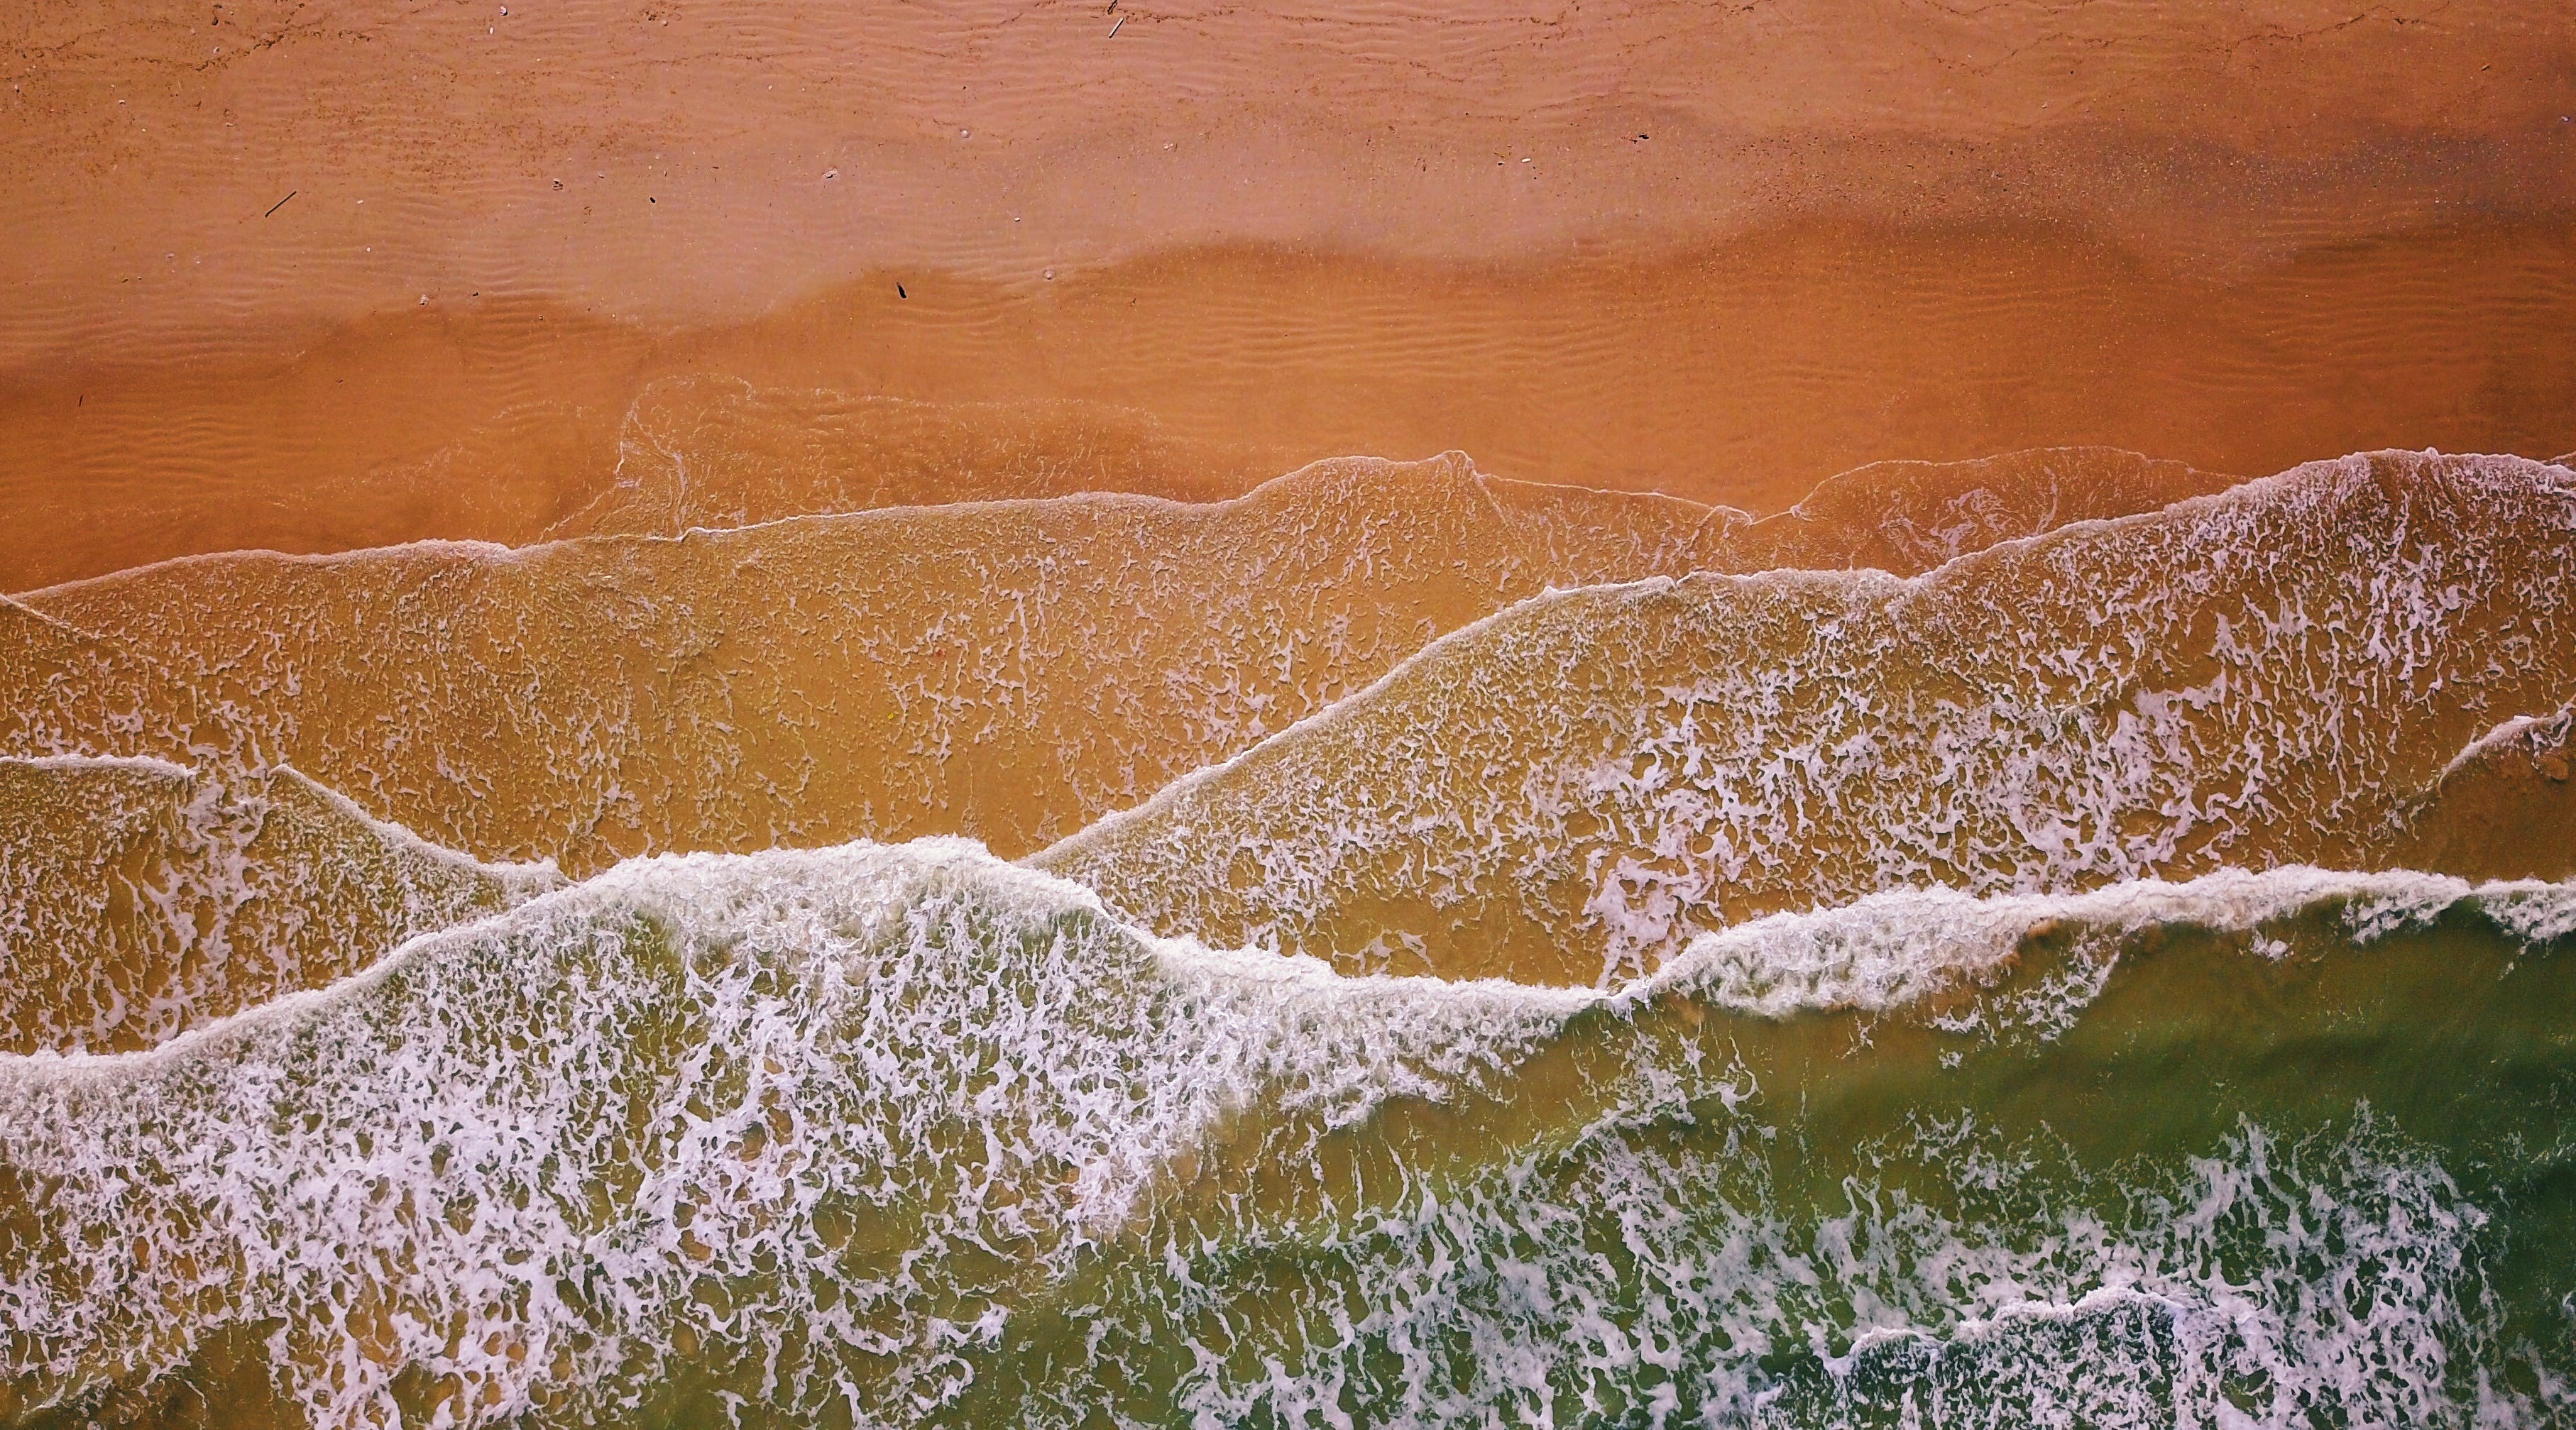 Aerial Photography of Flow of Water Near Sand